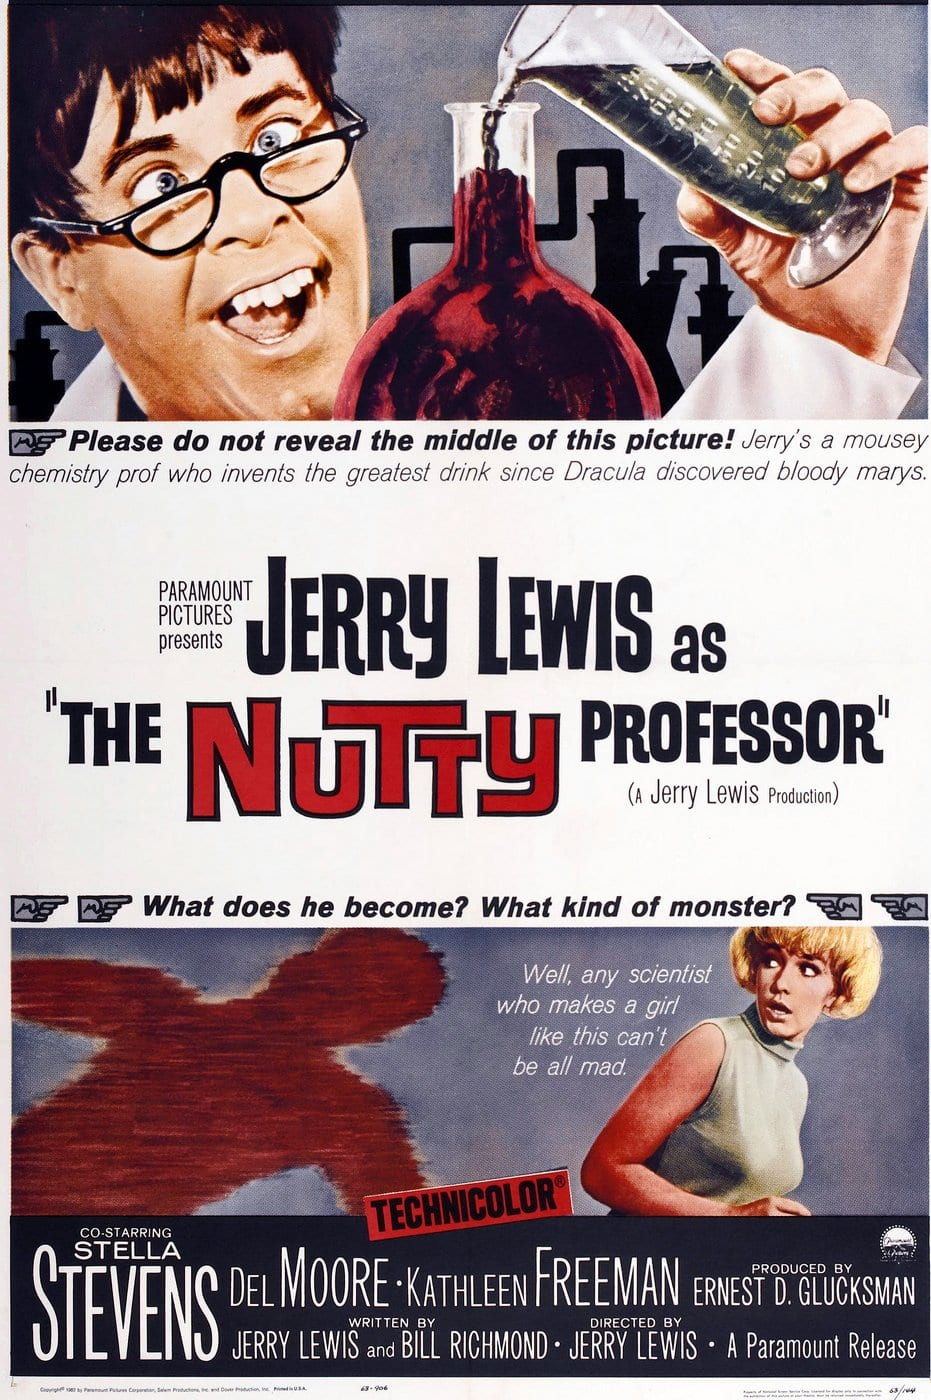 The Nutty Professor movie poster (1960s)